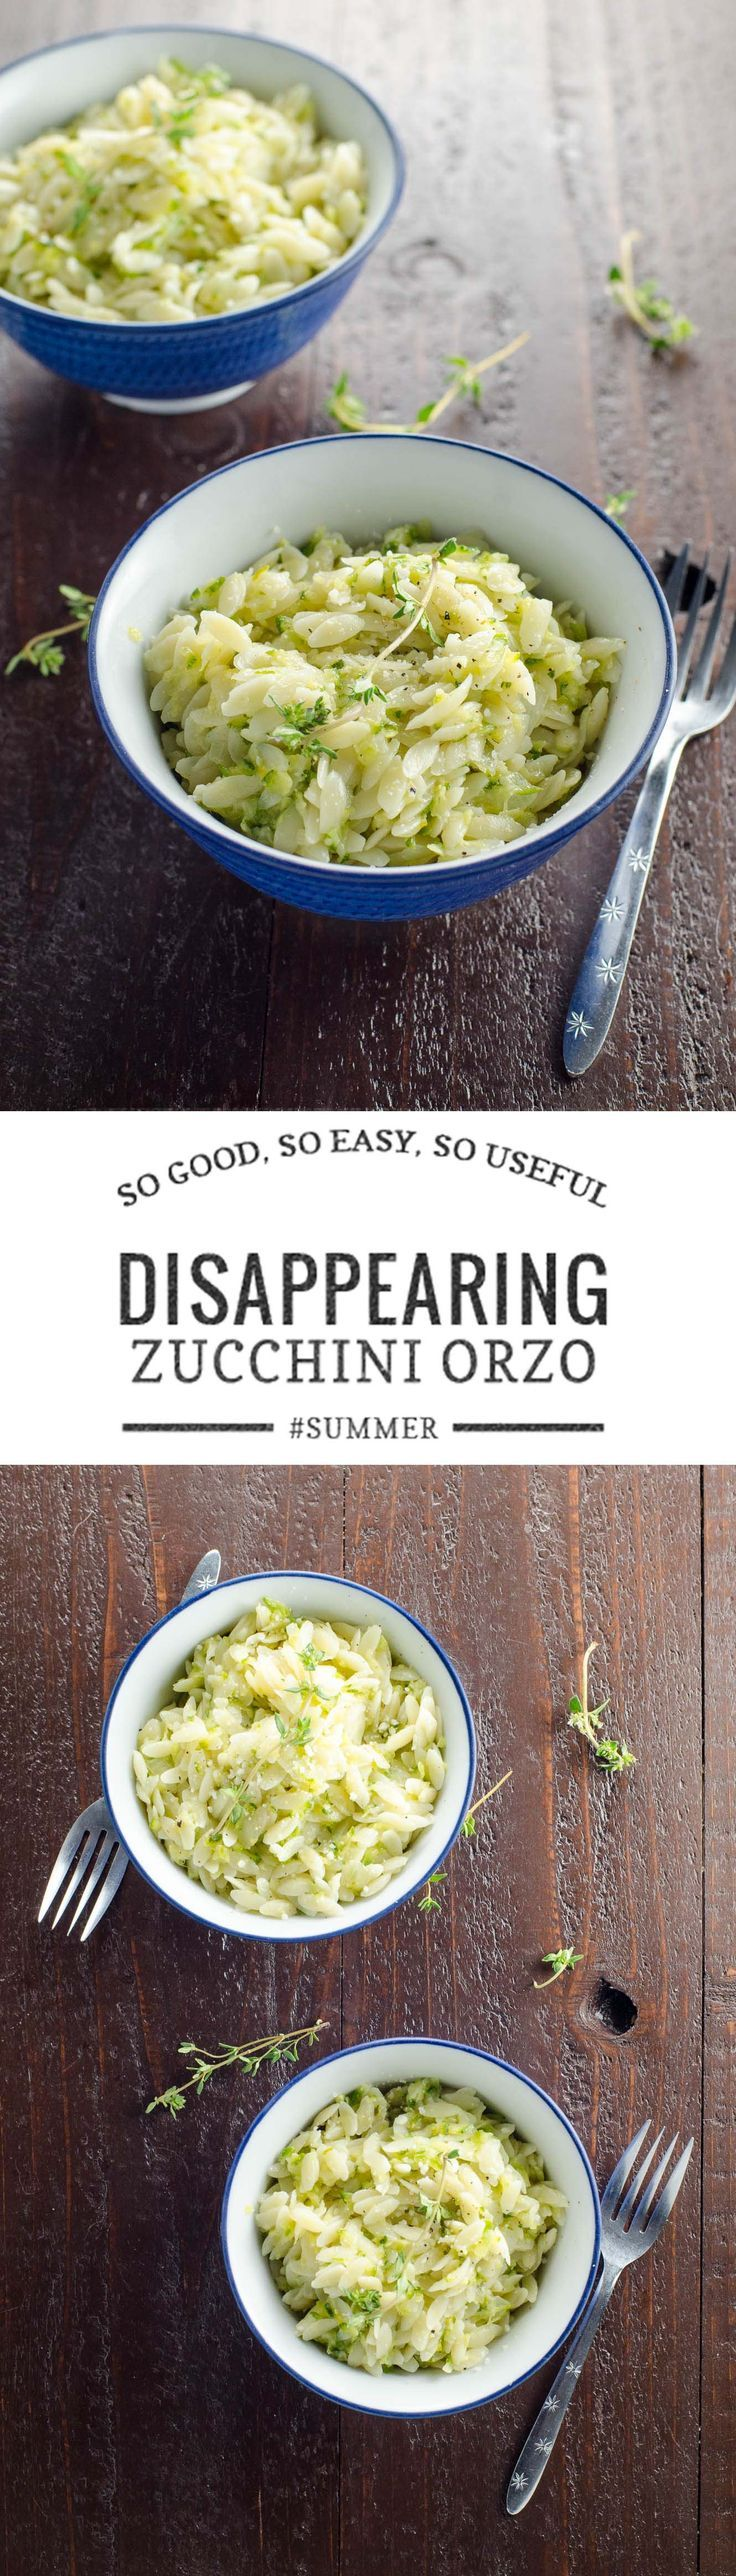 Camille Kingsolver's Disappearing Zucchini Orzo, adapted from Barbara Kingsolver's Animal, Vegetable Miracle, is a crowd-pleasing way to use up tons of zucchini in a flash. via @umamigirl